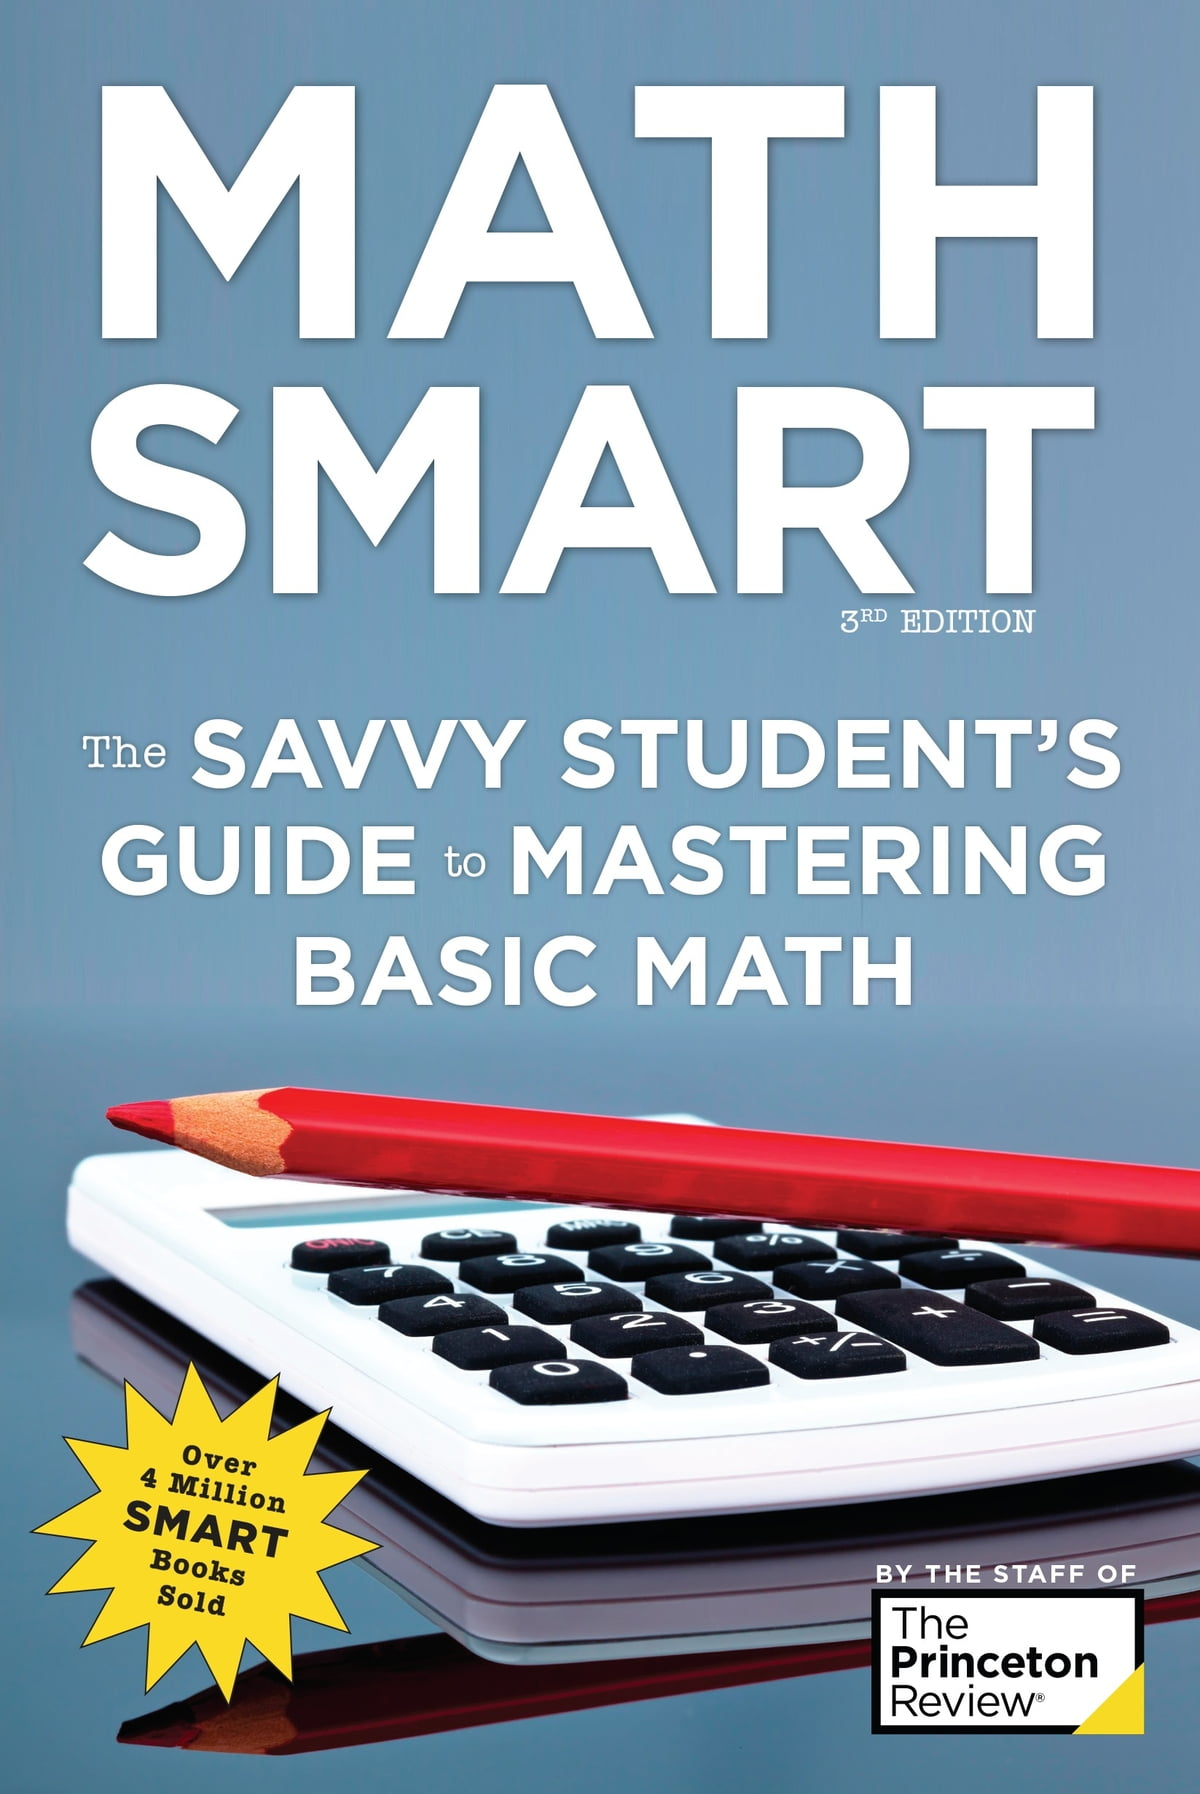 Math Smart, 3rd Edition eBook by Princeton Review - 9781524710590 ...